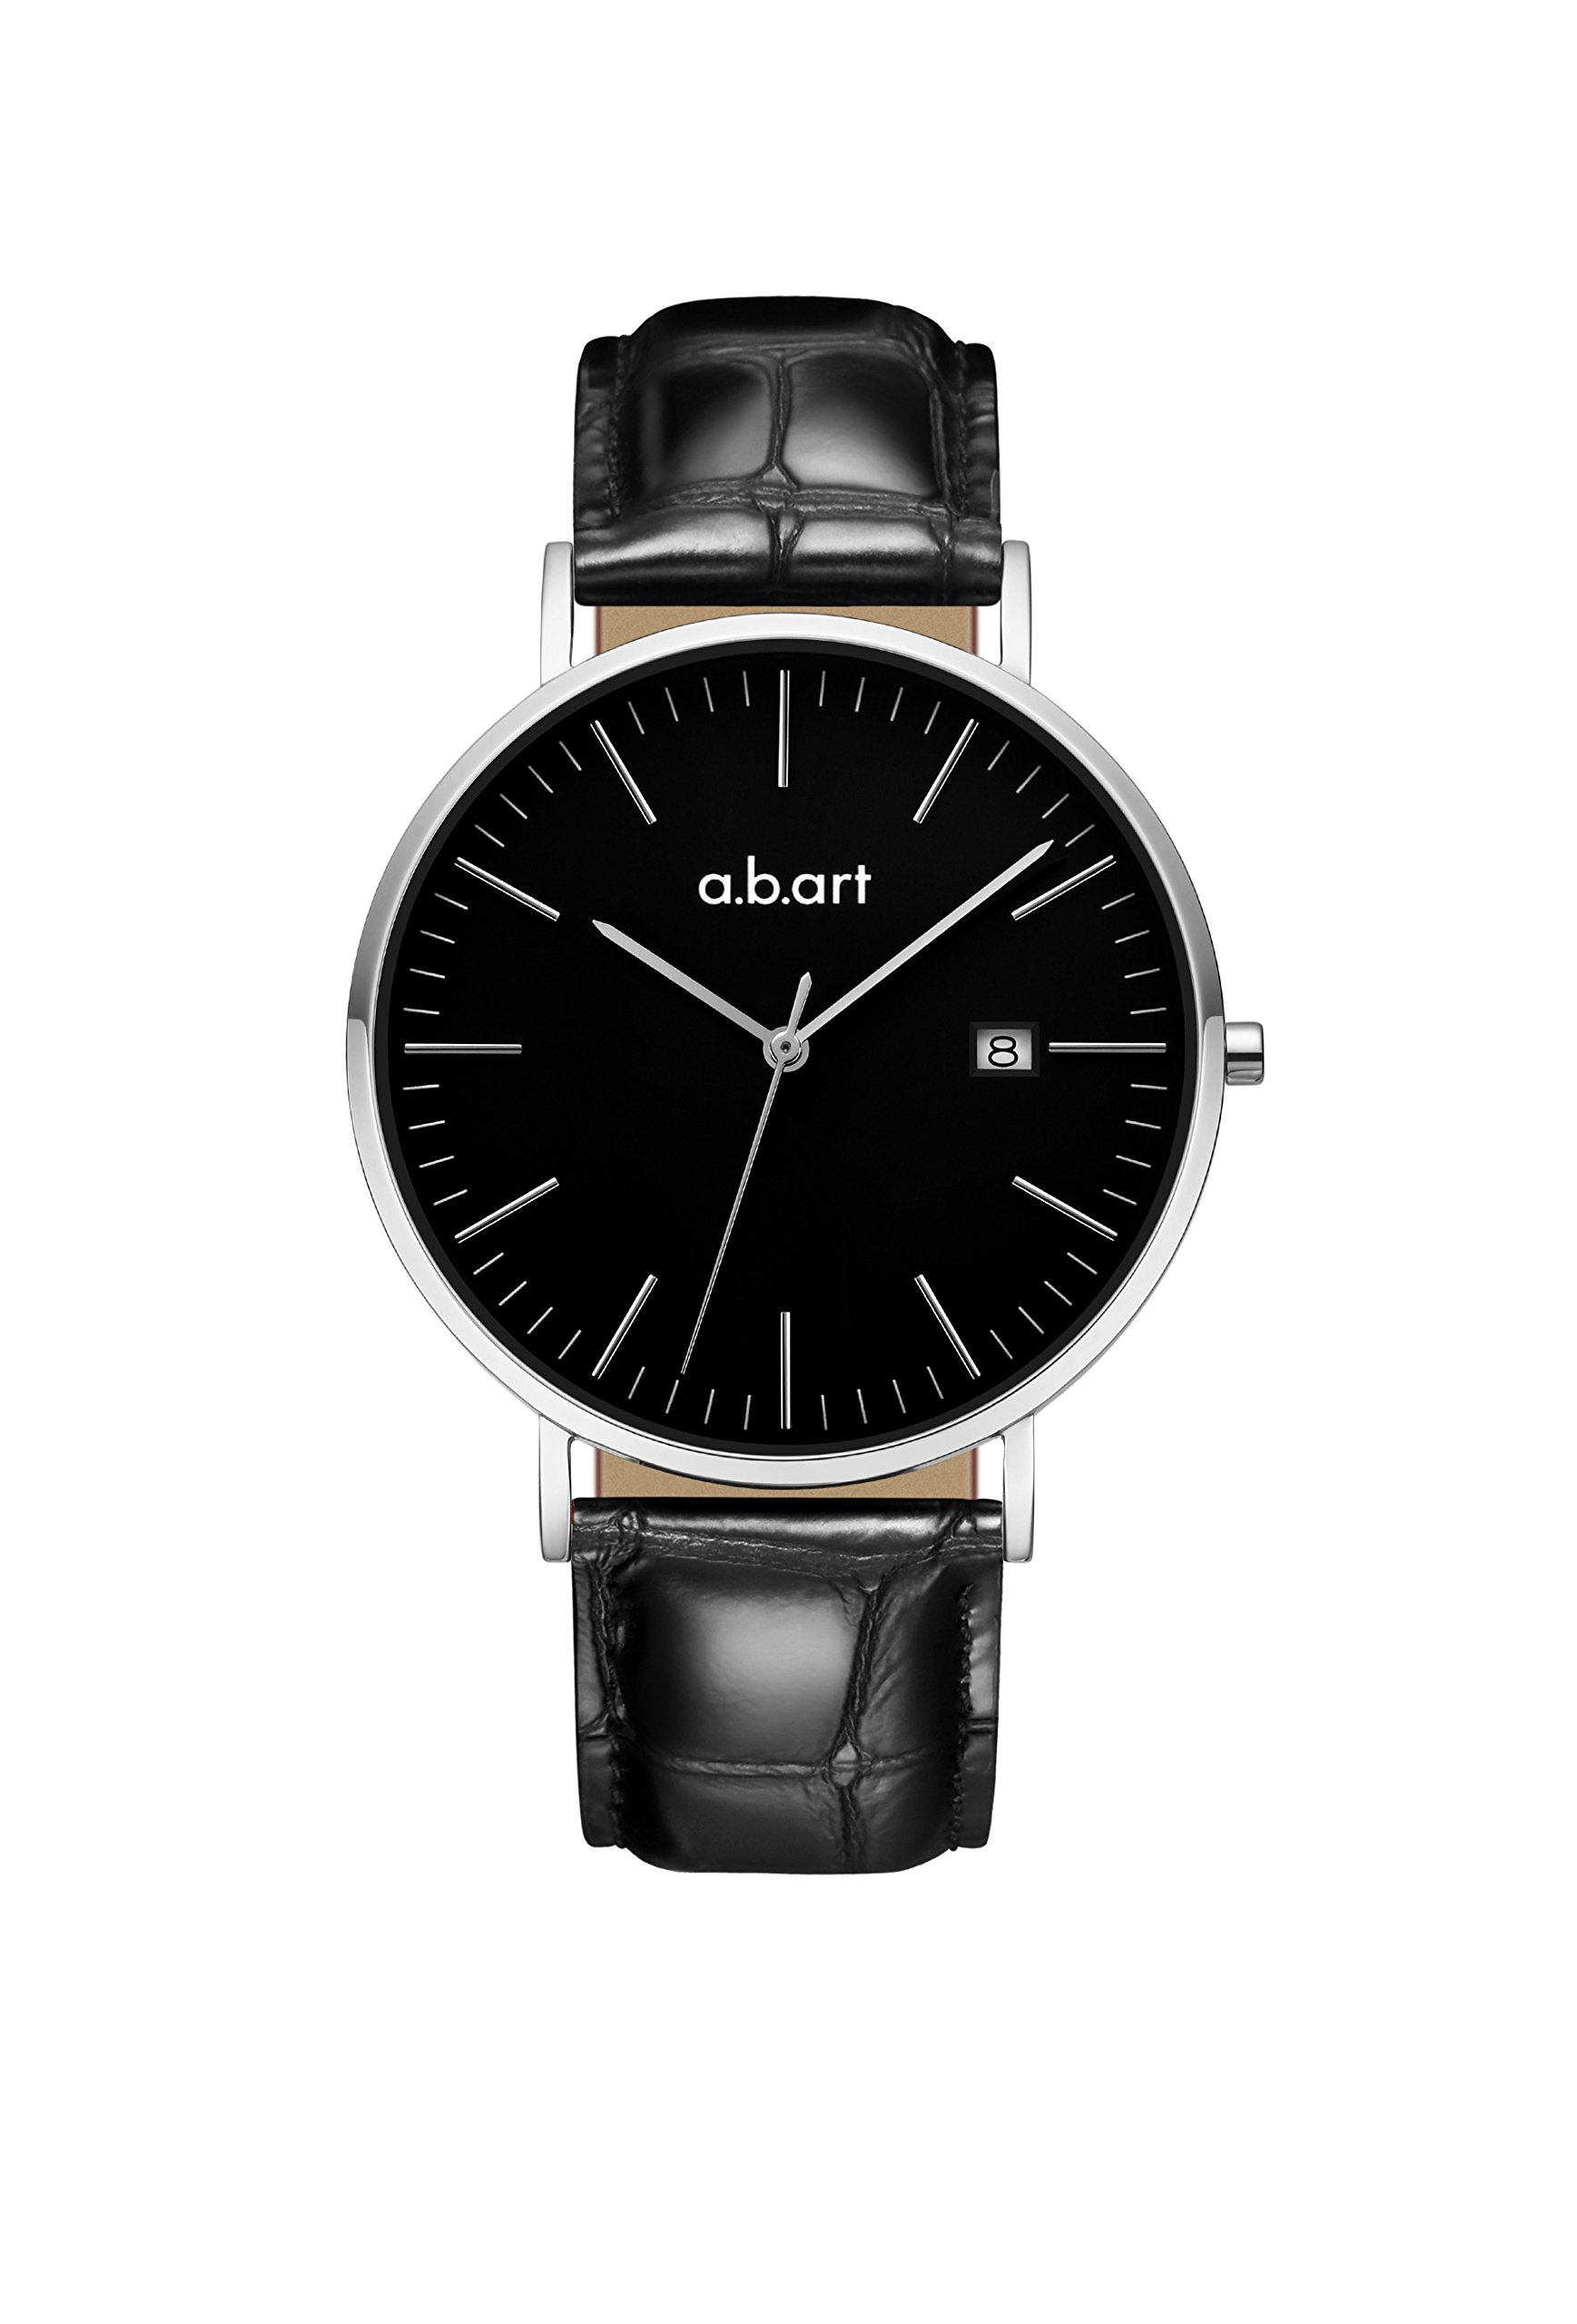 abart Wrist Watch for Men his Watches FB41 Analog Crystal Sapphire Roman Numerals Watches (Black dial Black Strap)